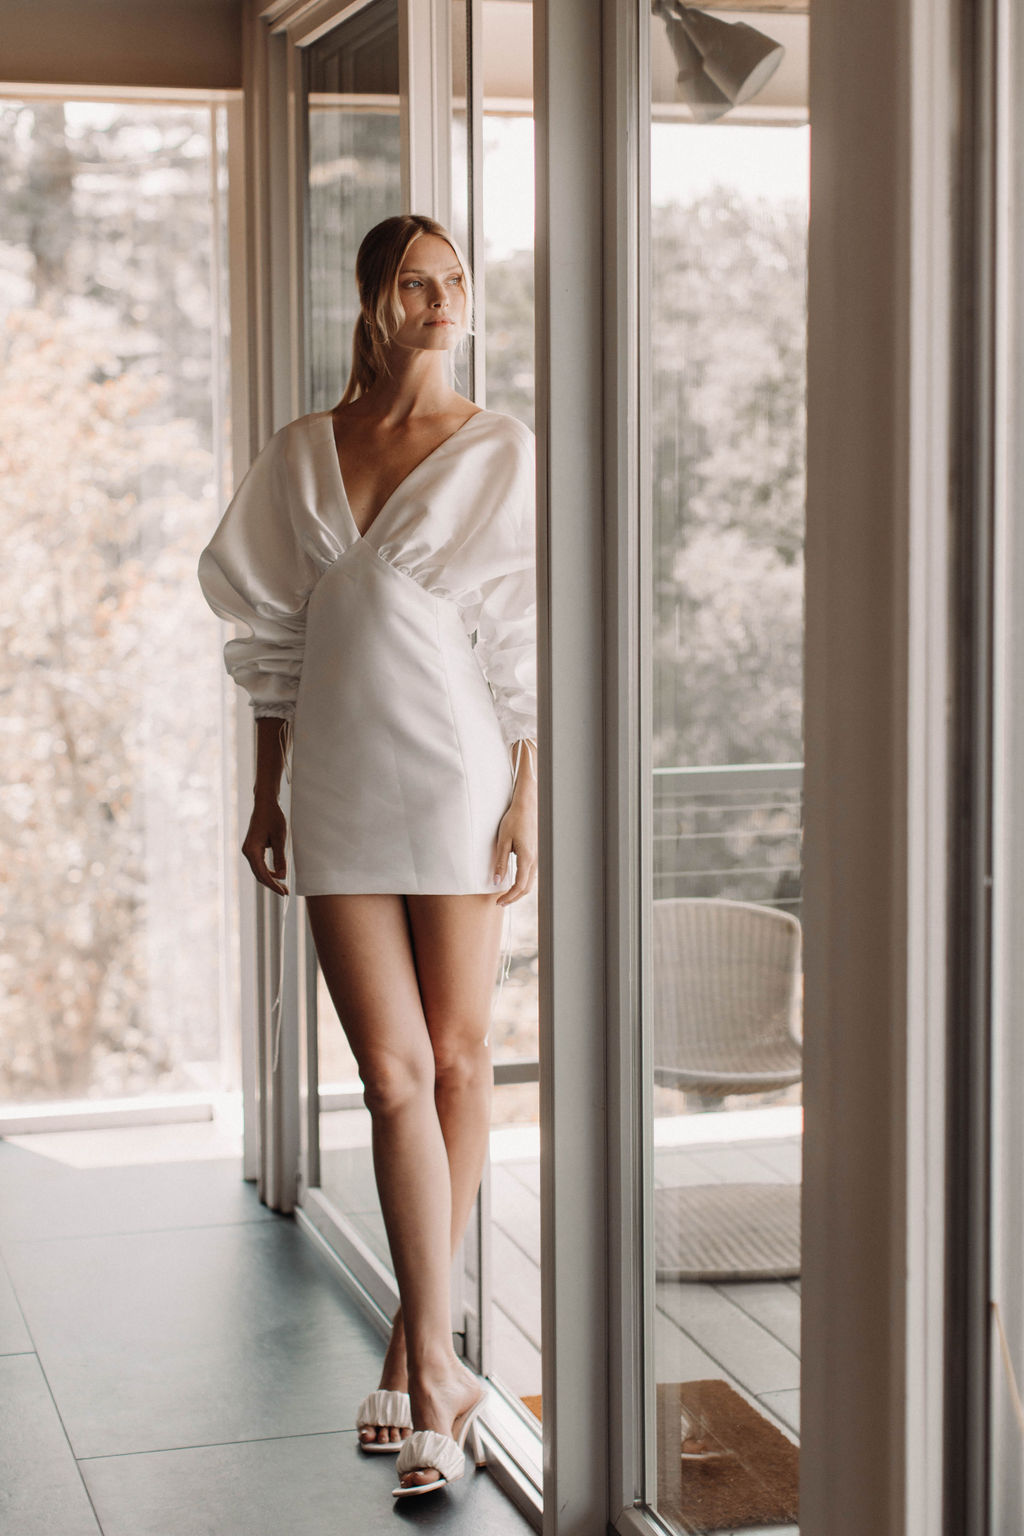 The Best Modern Wedding Dresses for 2022 Brides by The Law Bridal – Bridal Musings 39